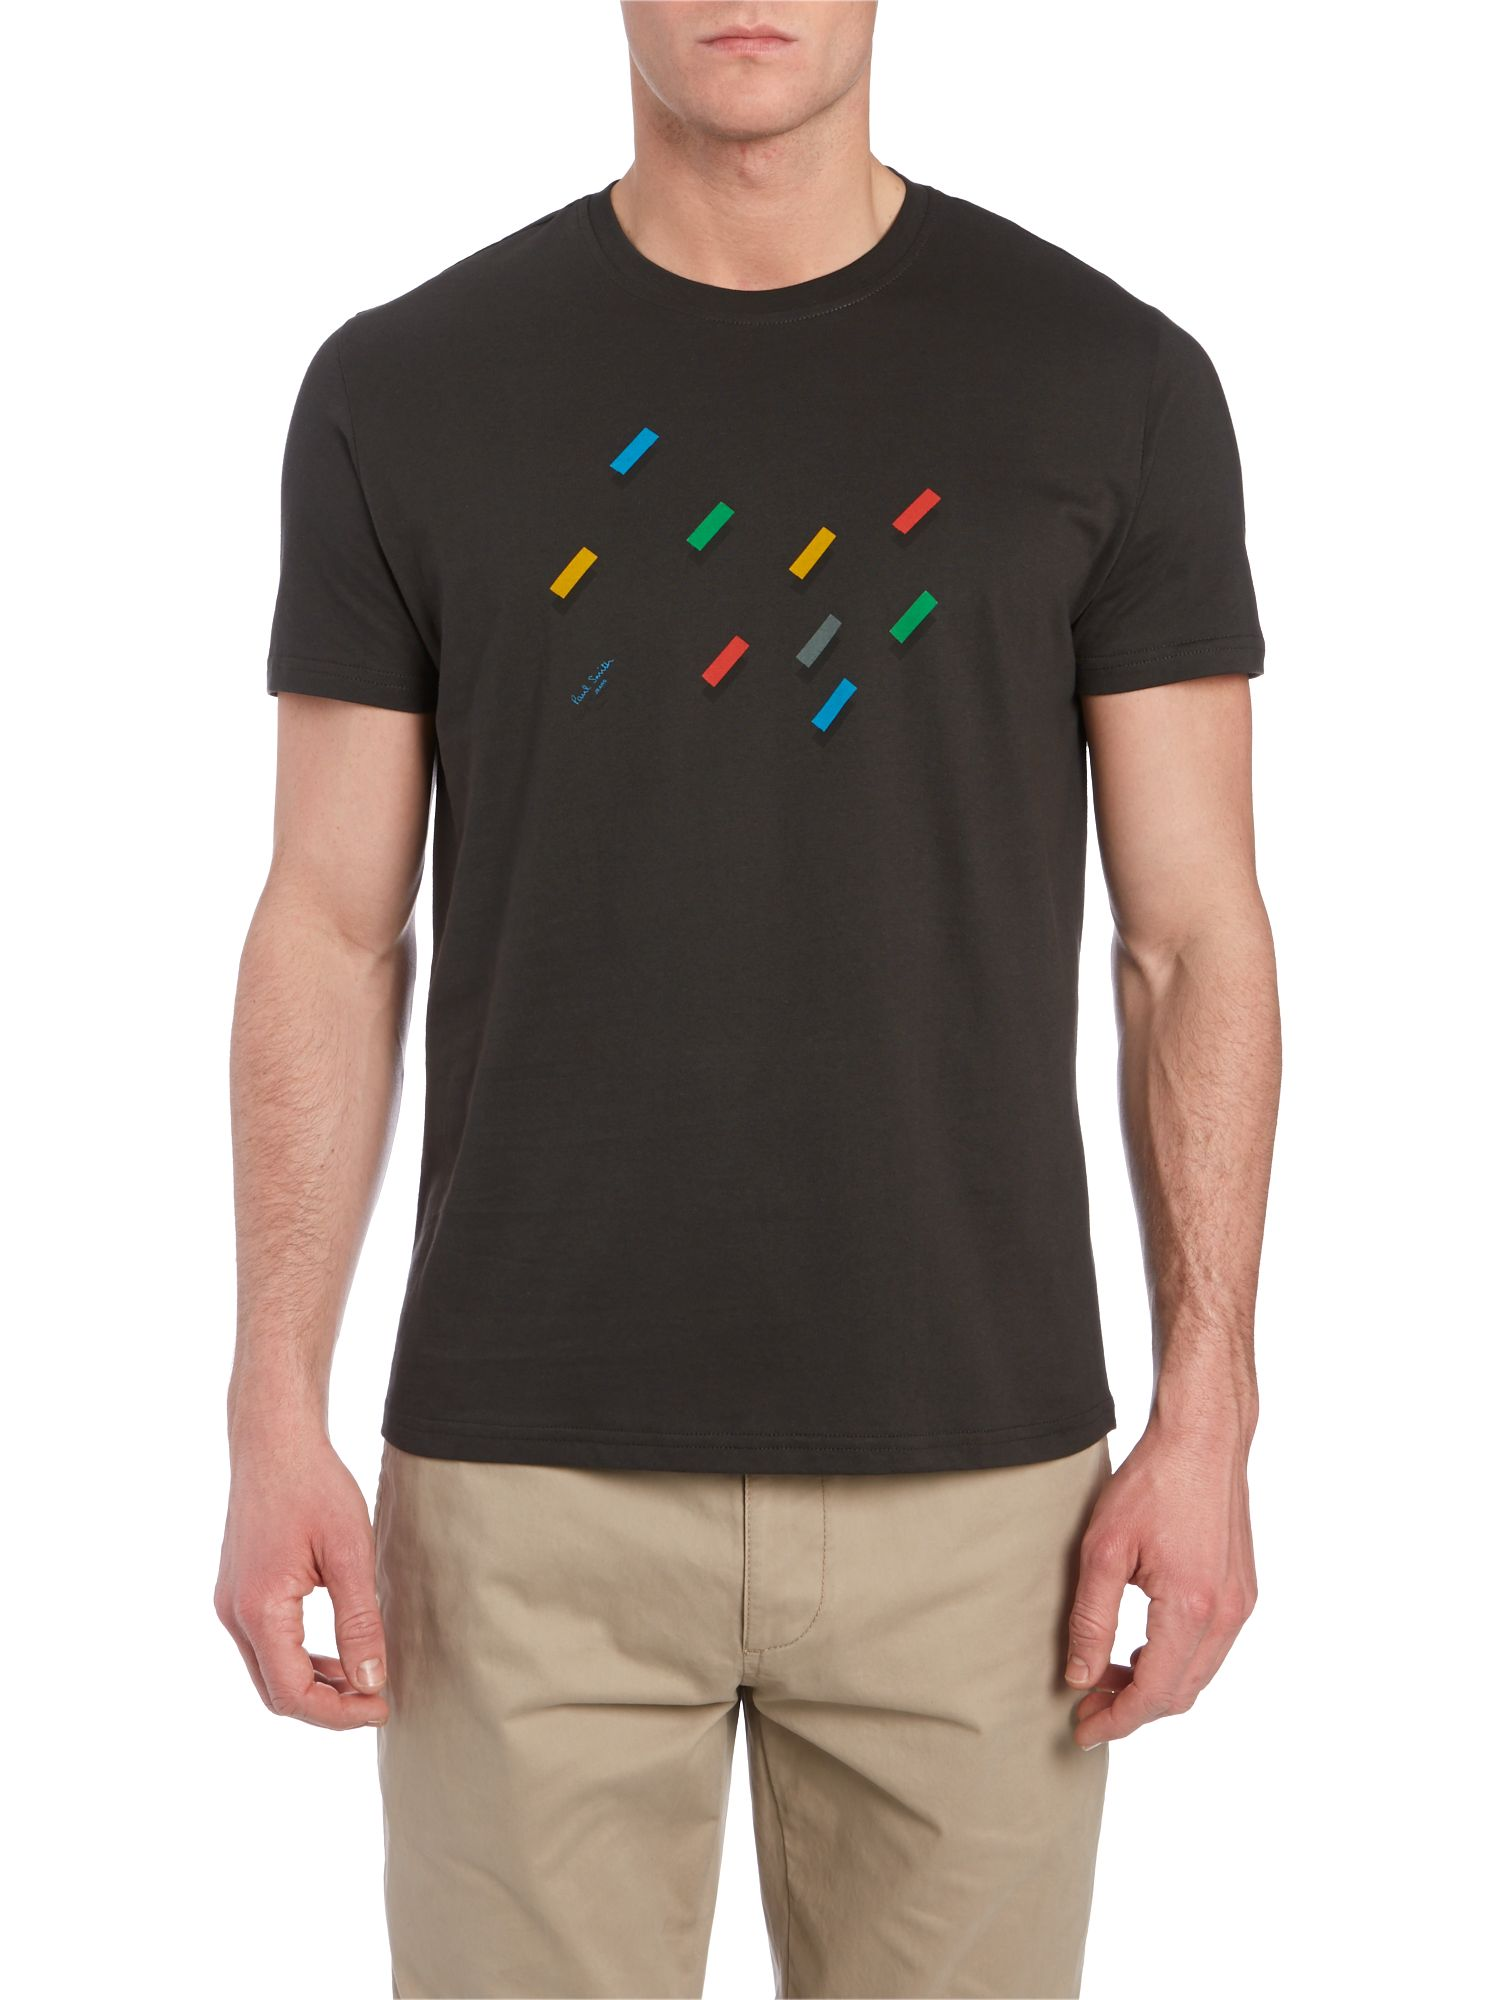 Blocks t shirt